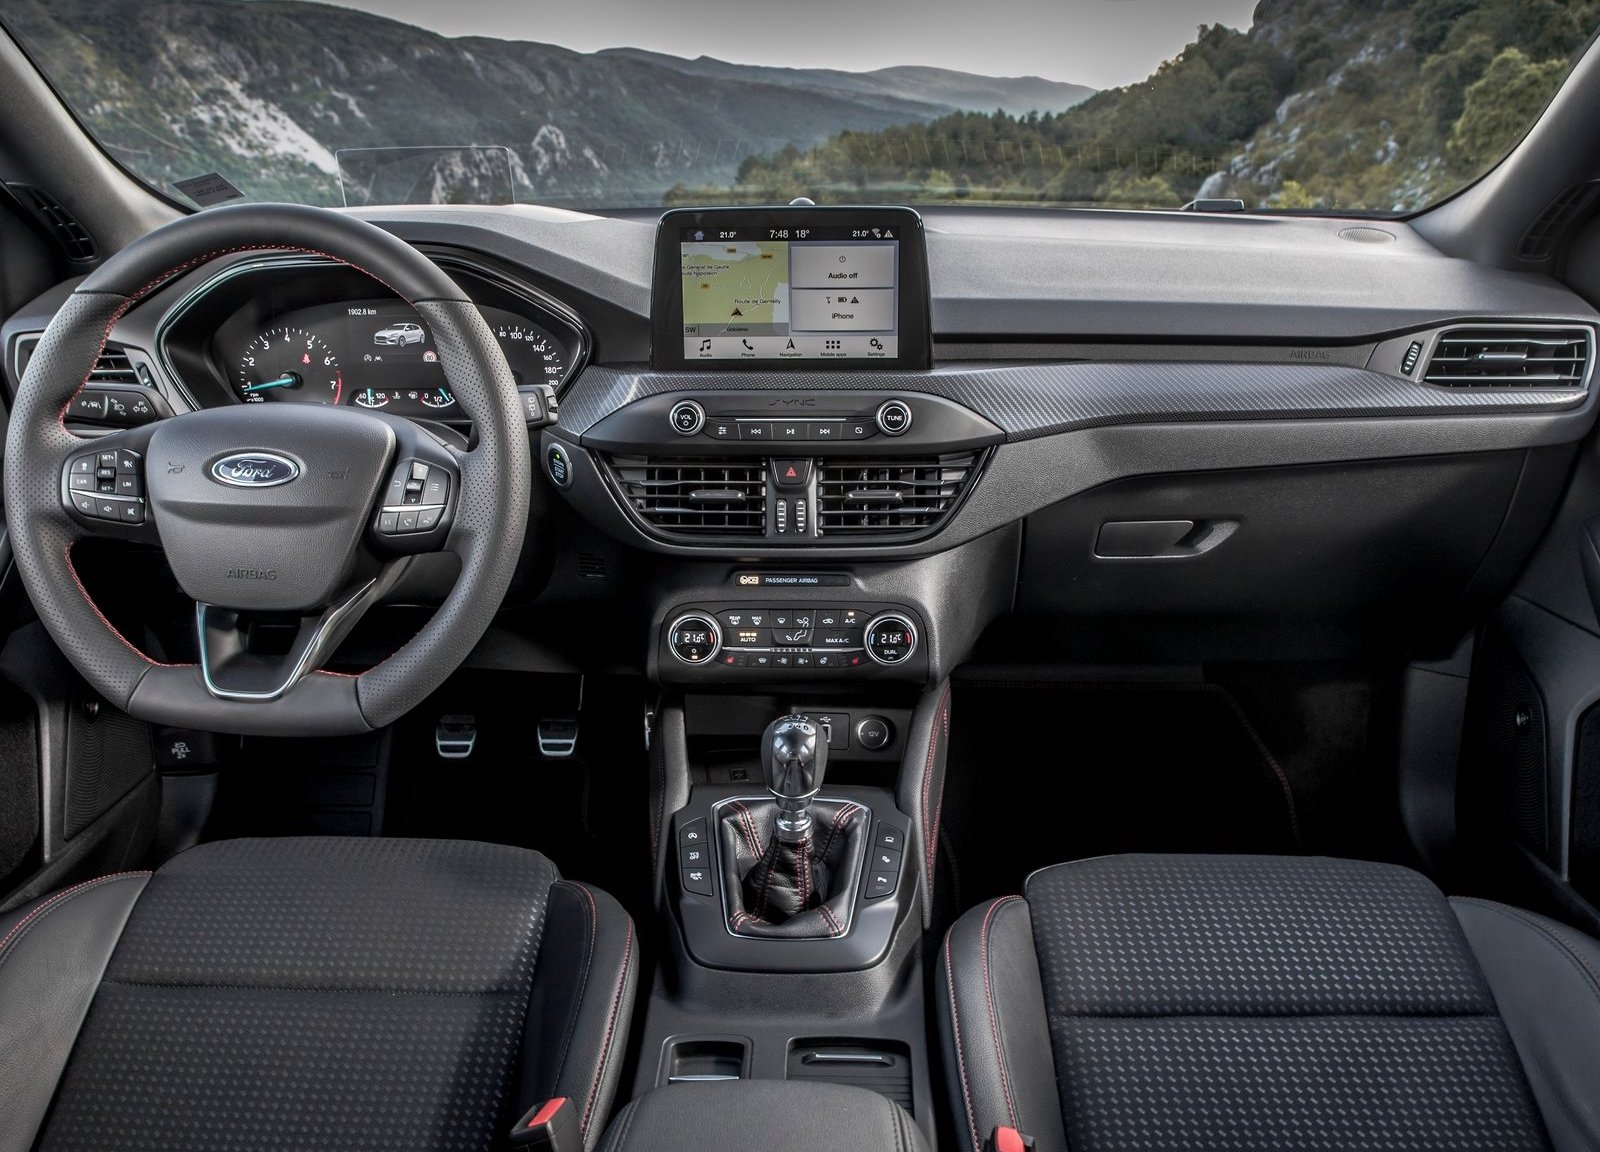 2019 ford mondeo and mondeo wagon interior